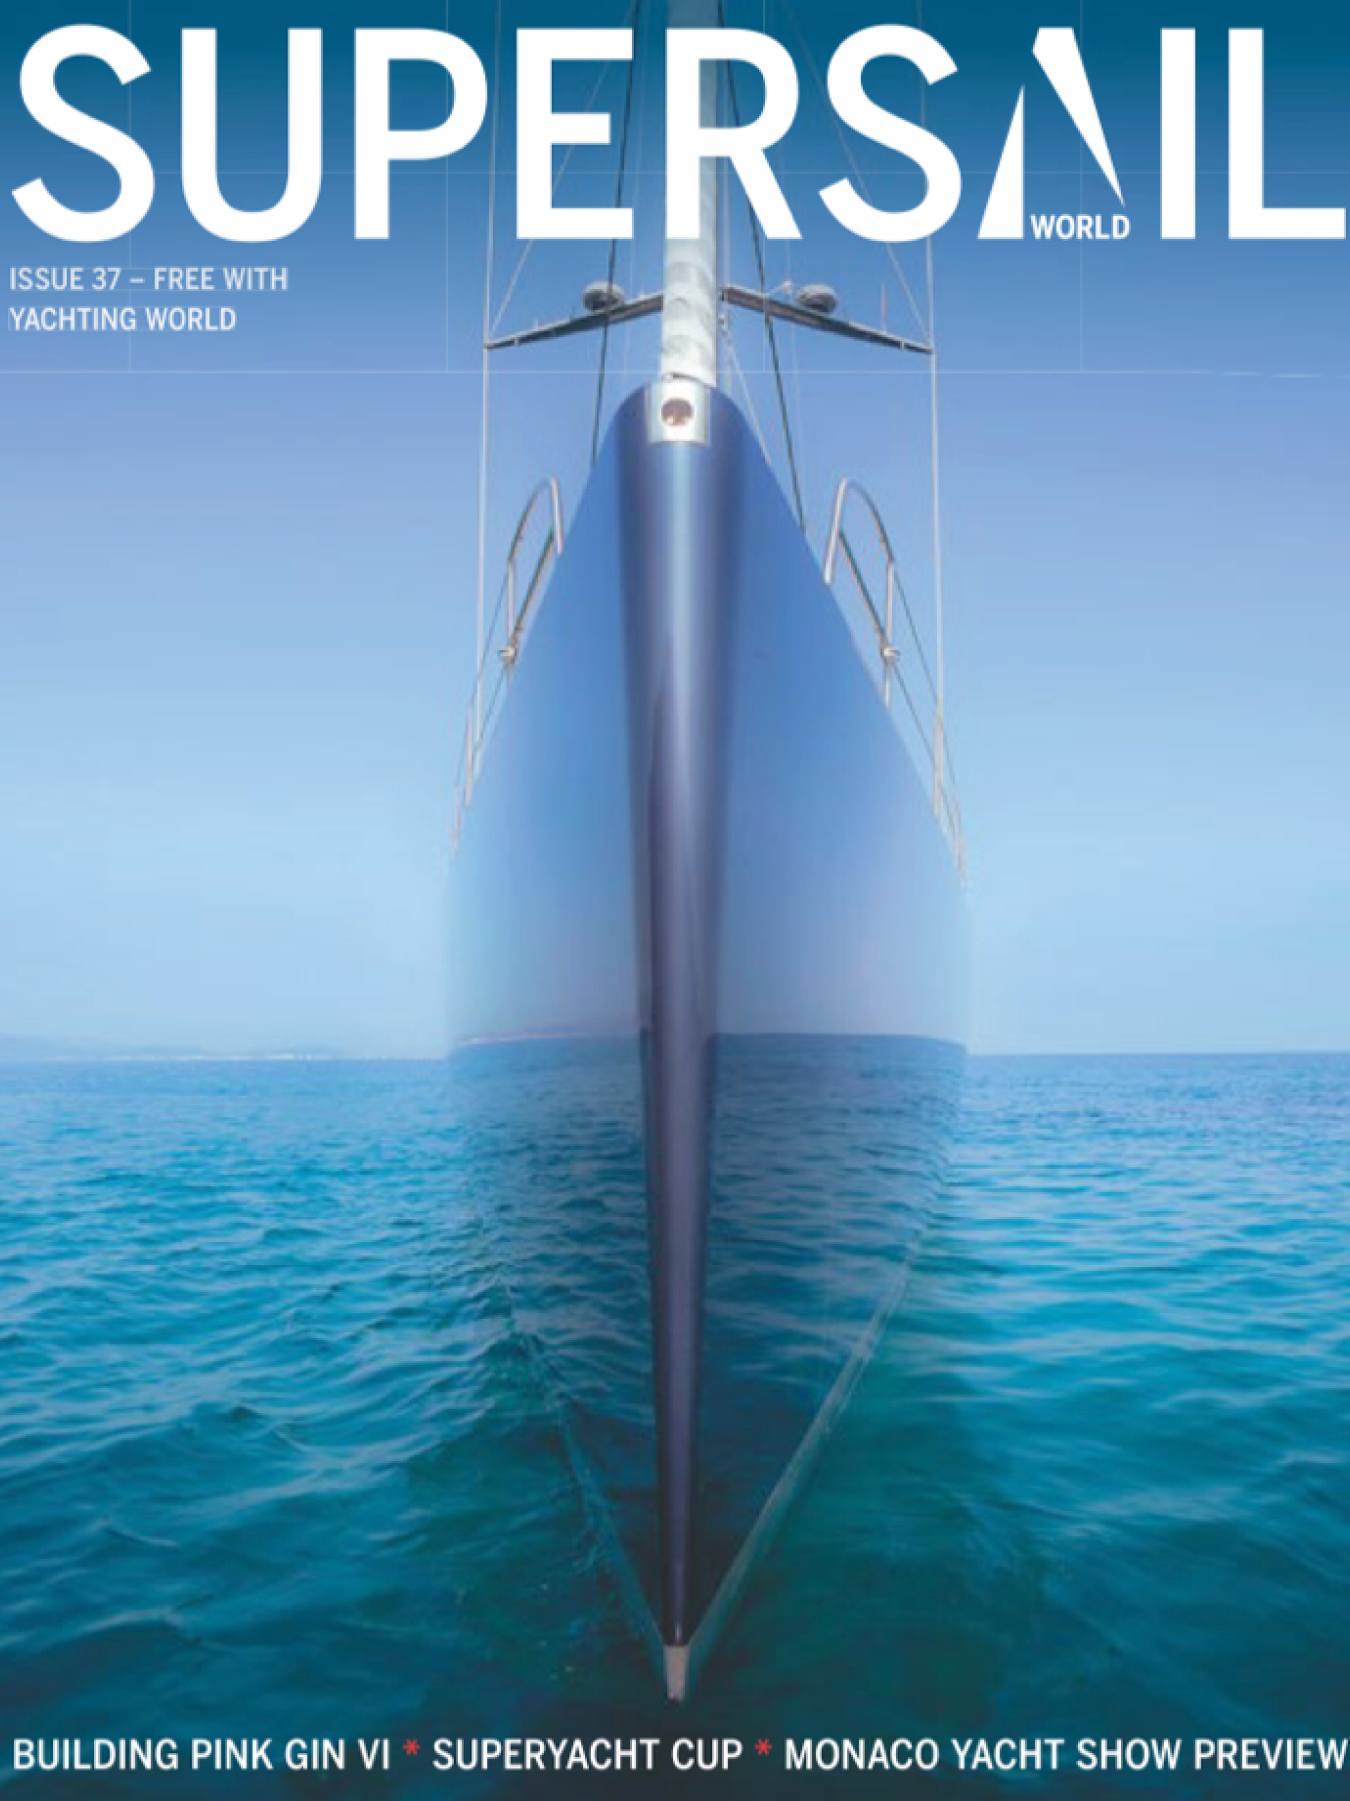 Supersail World ISSUE 37.jpg